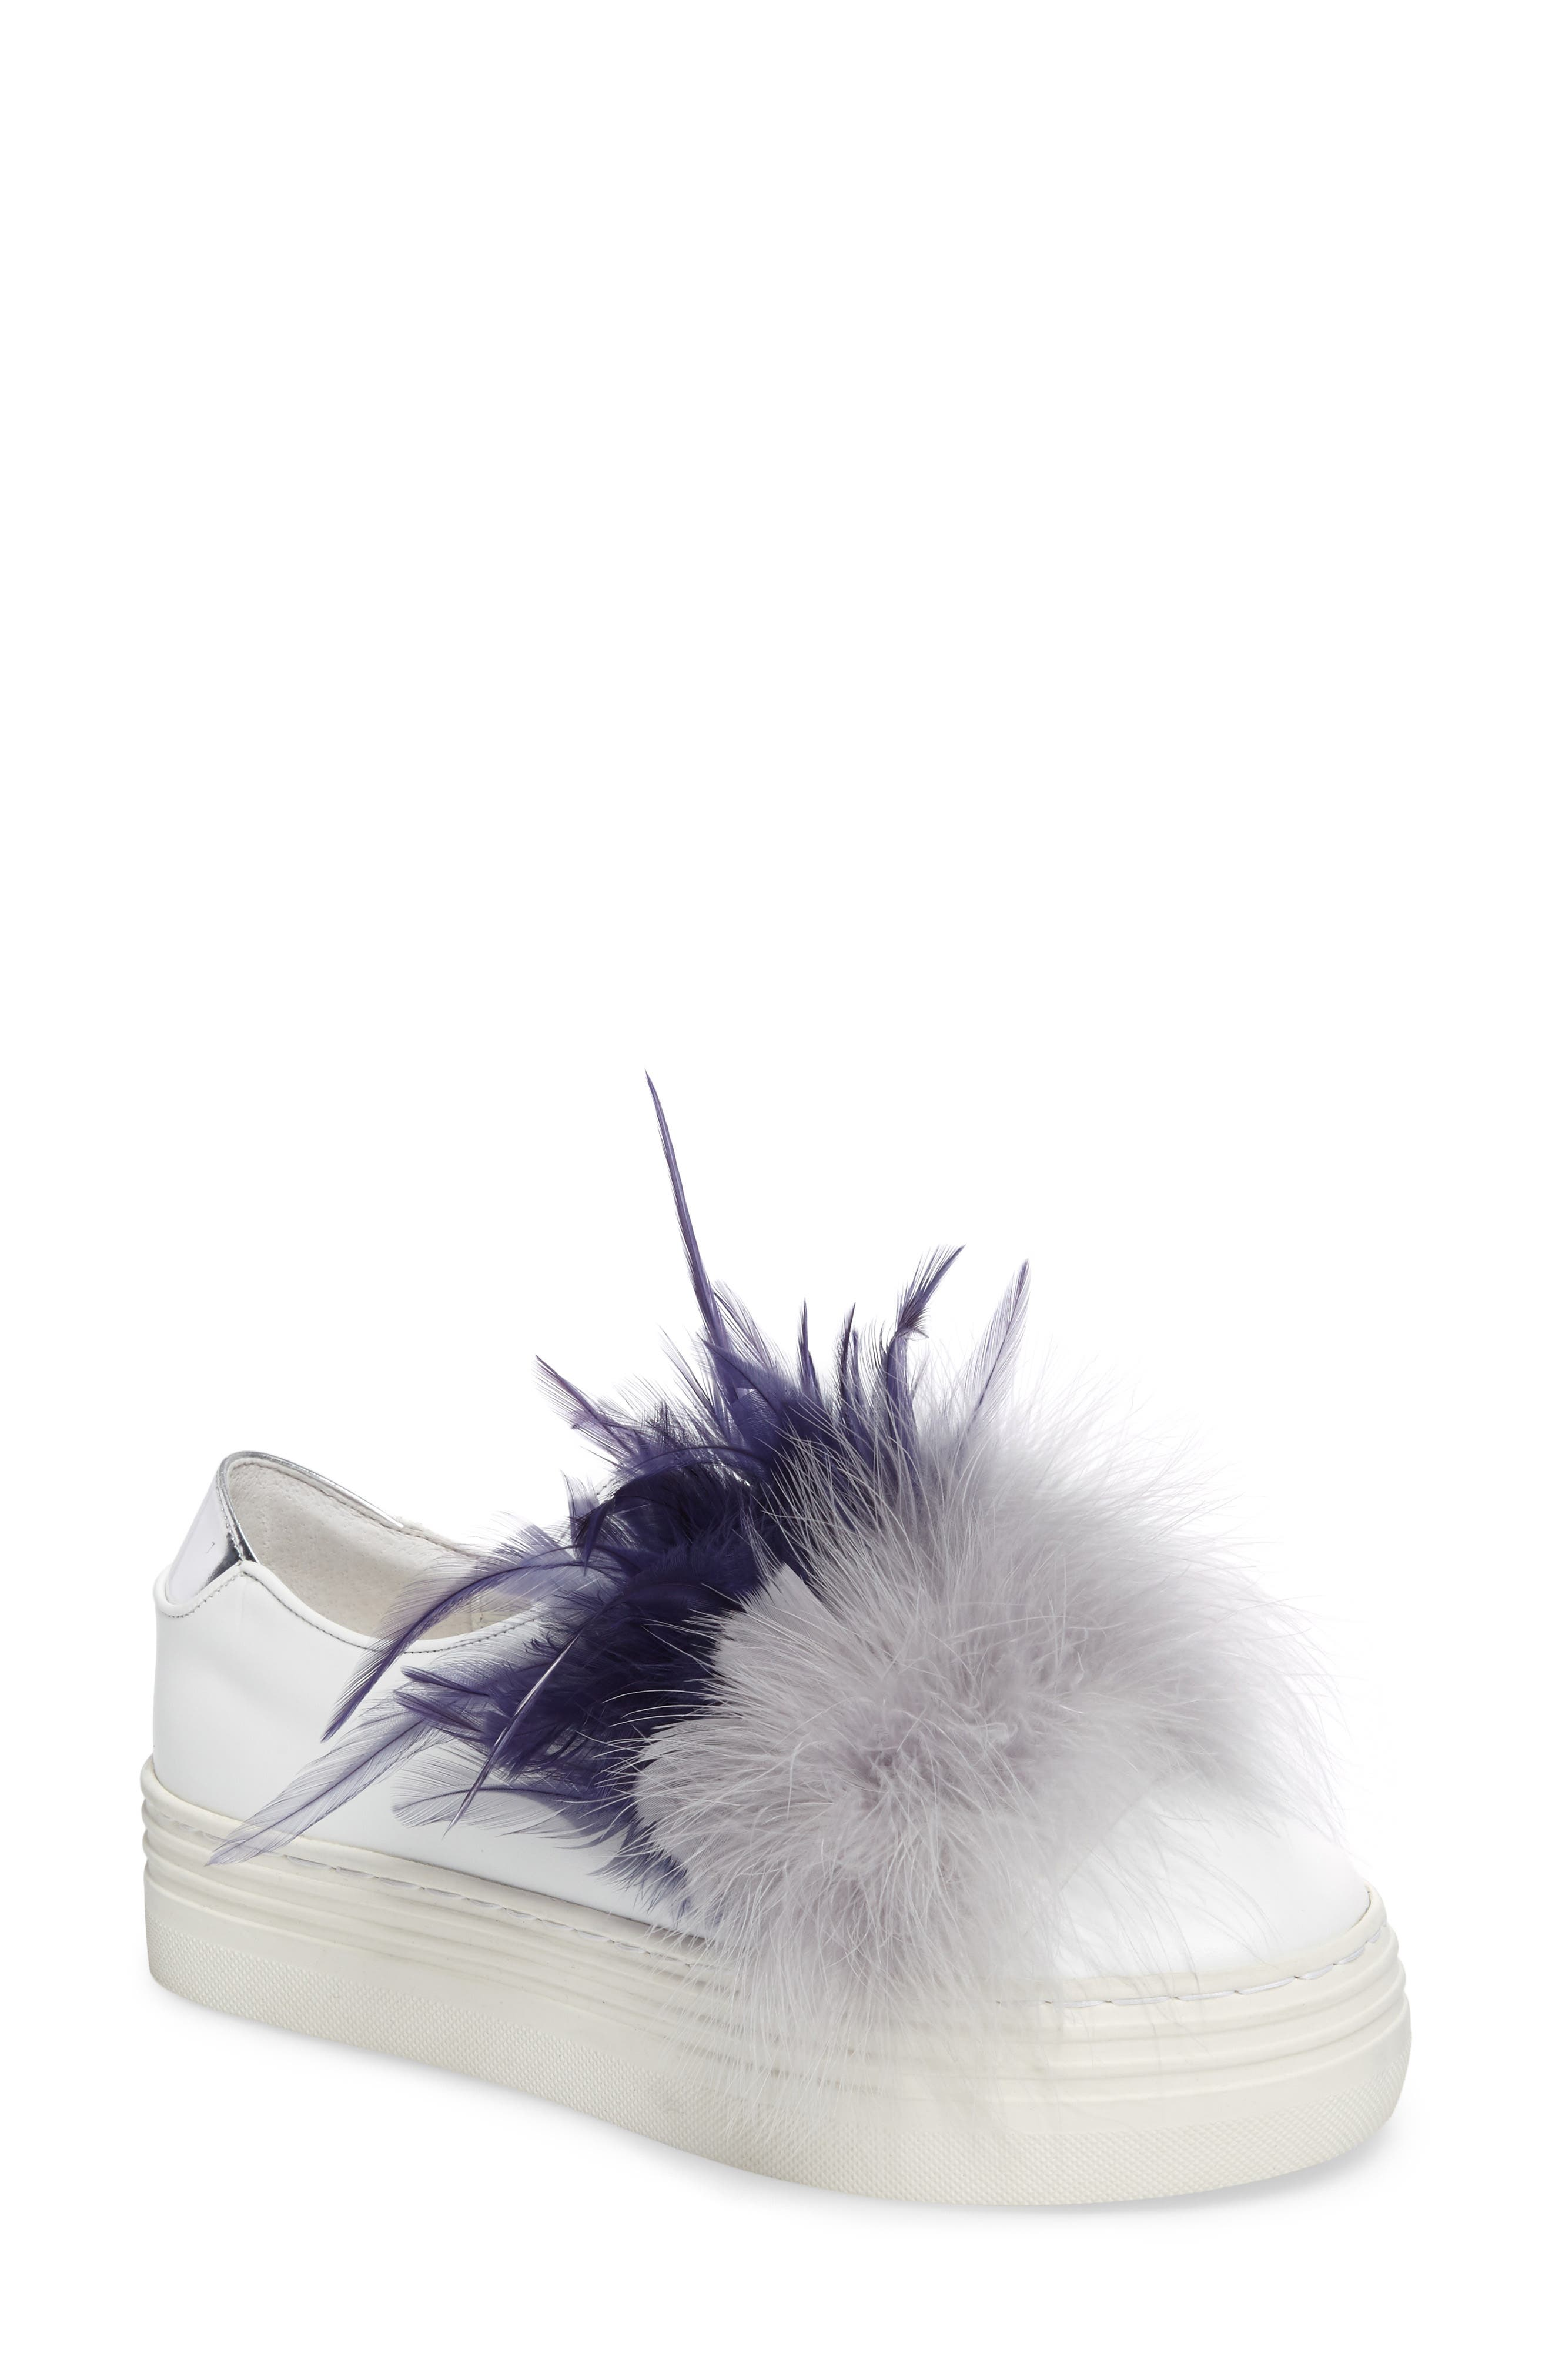 Alternate Image 1 Selected - Here / Now Tina Feathered Slip-On Sneaker (Women)